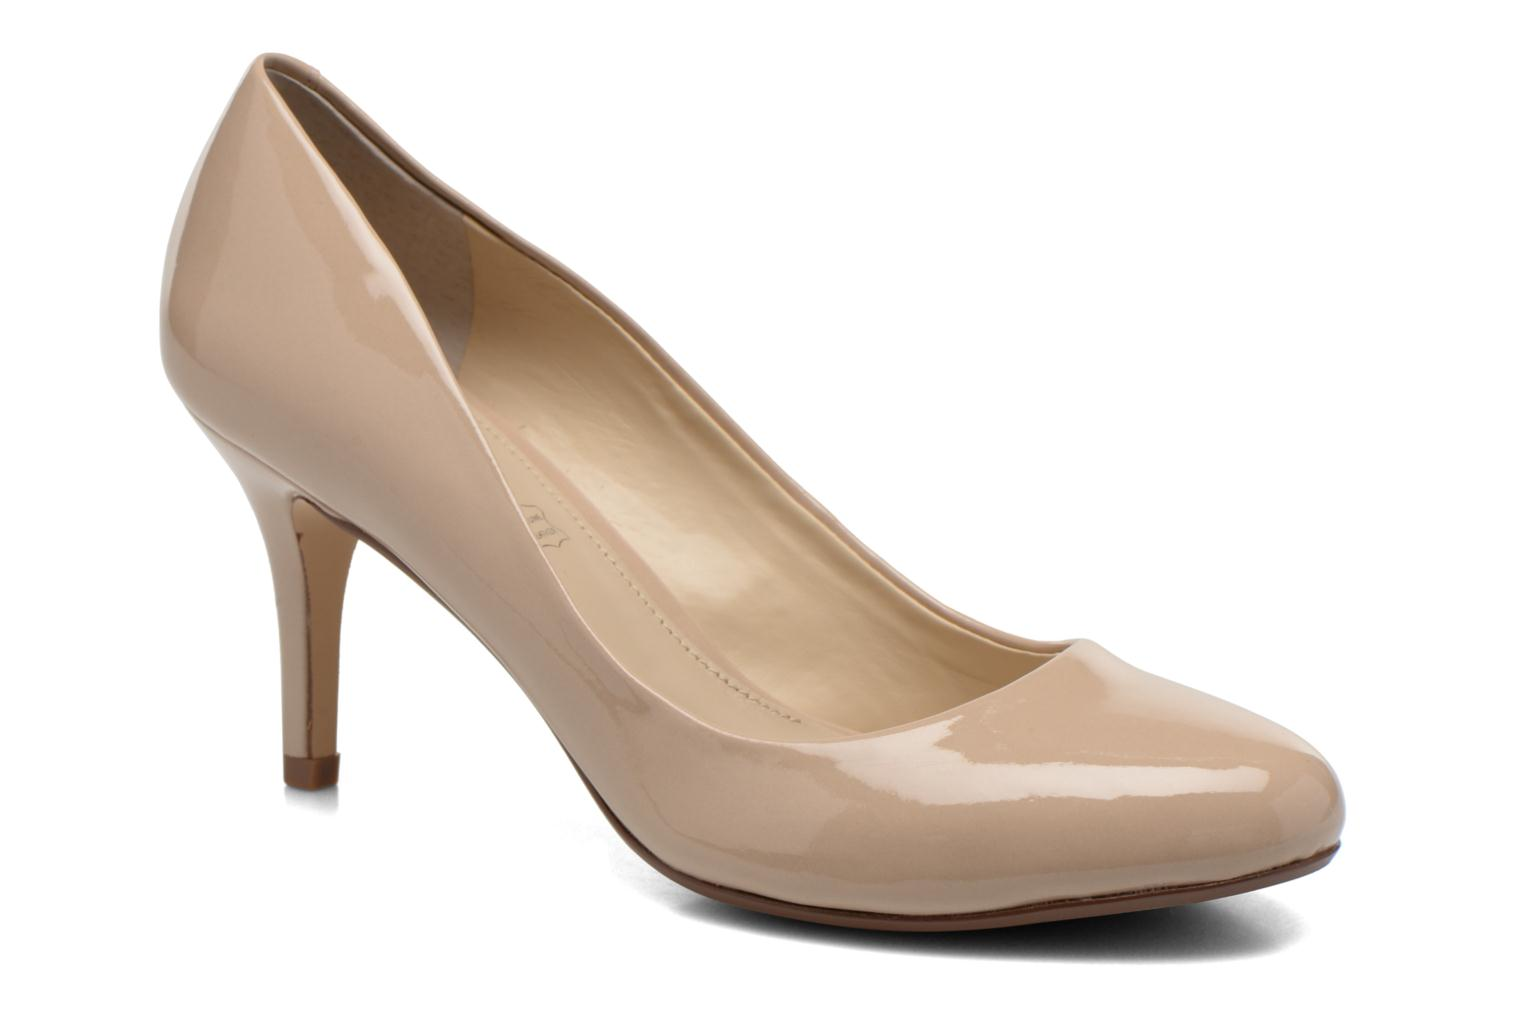 Pumps Lugene by Aldo